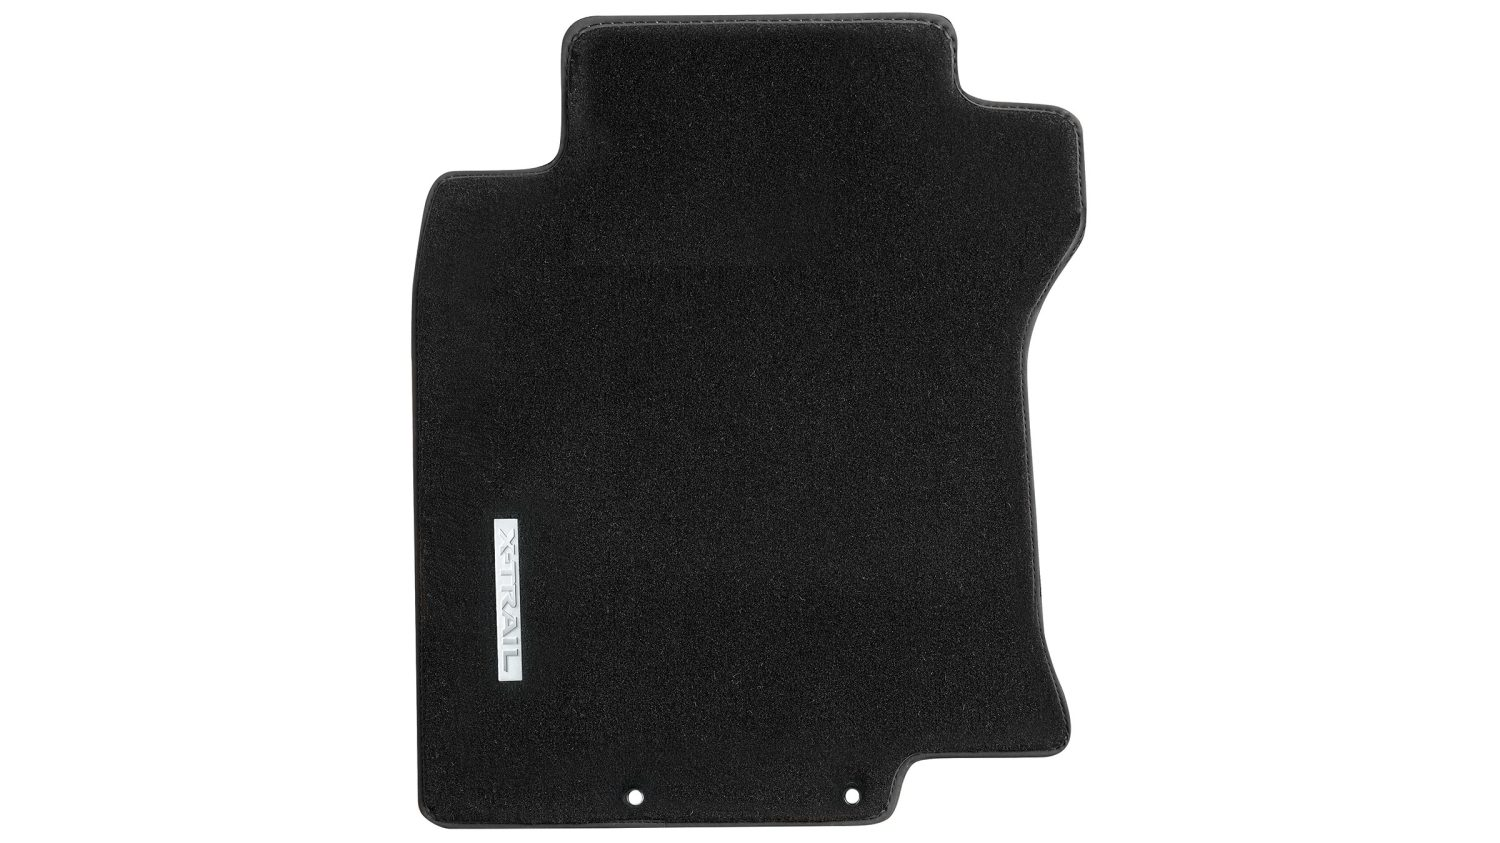 X-Trail textile luxury black mats